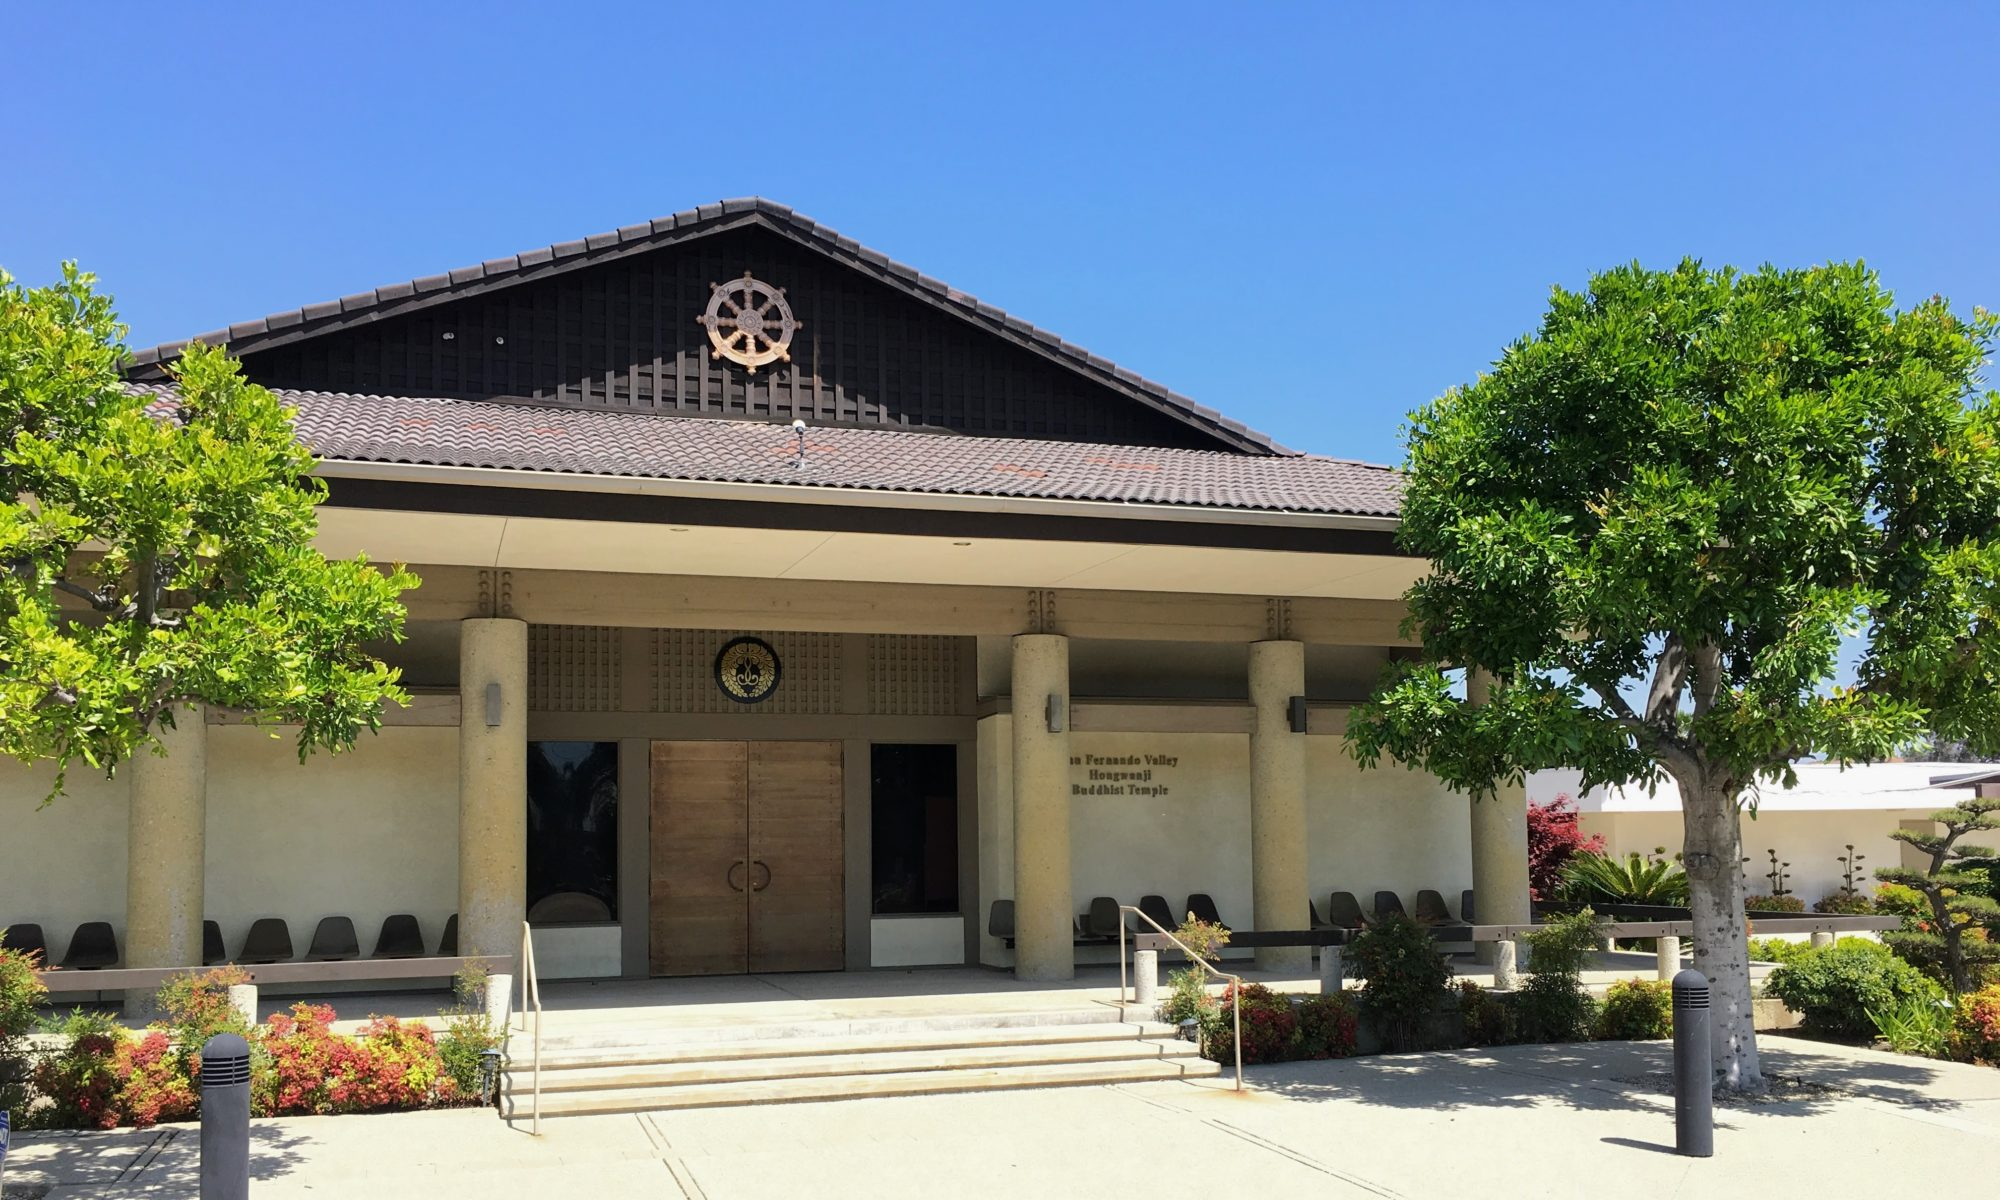 San Fernando Valley Hongwanji Buddhist Temple